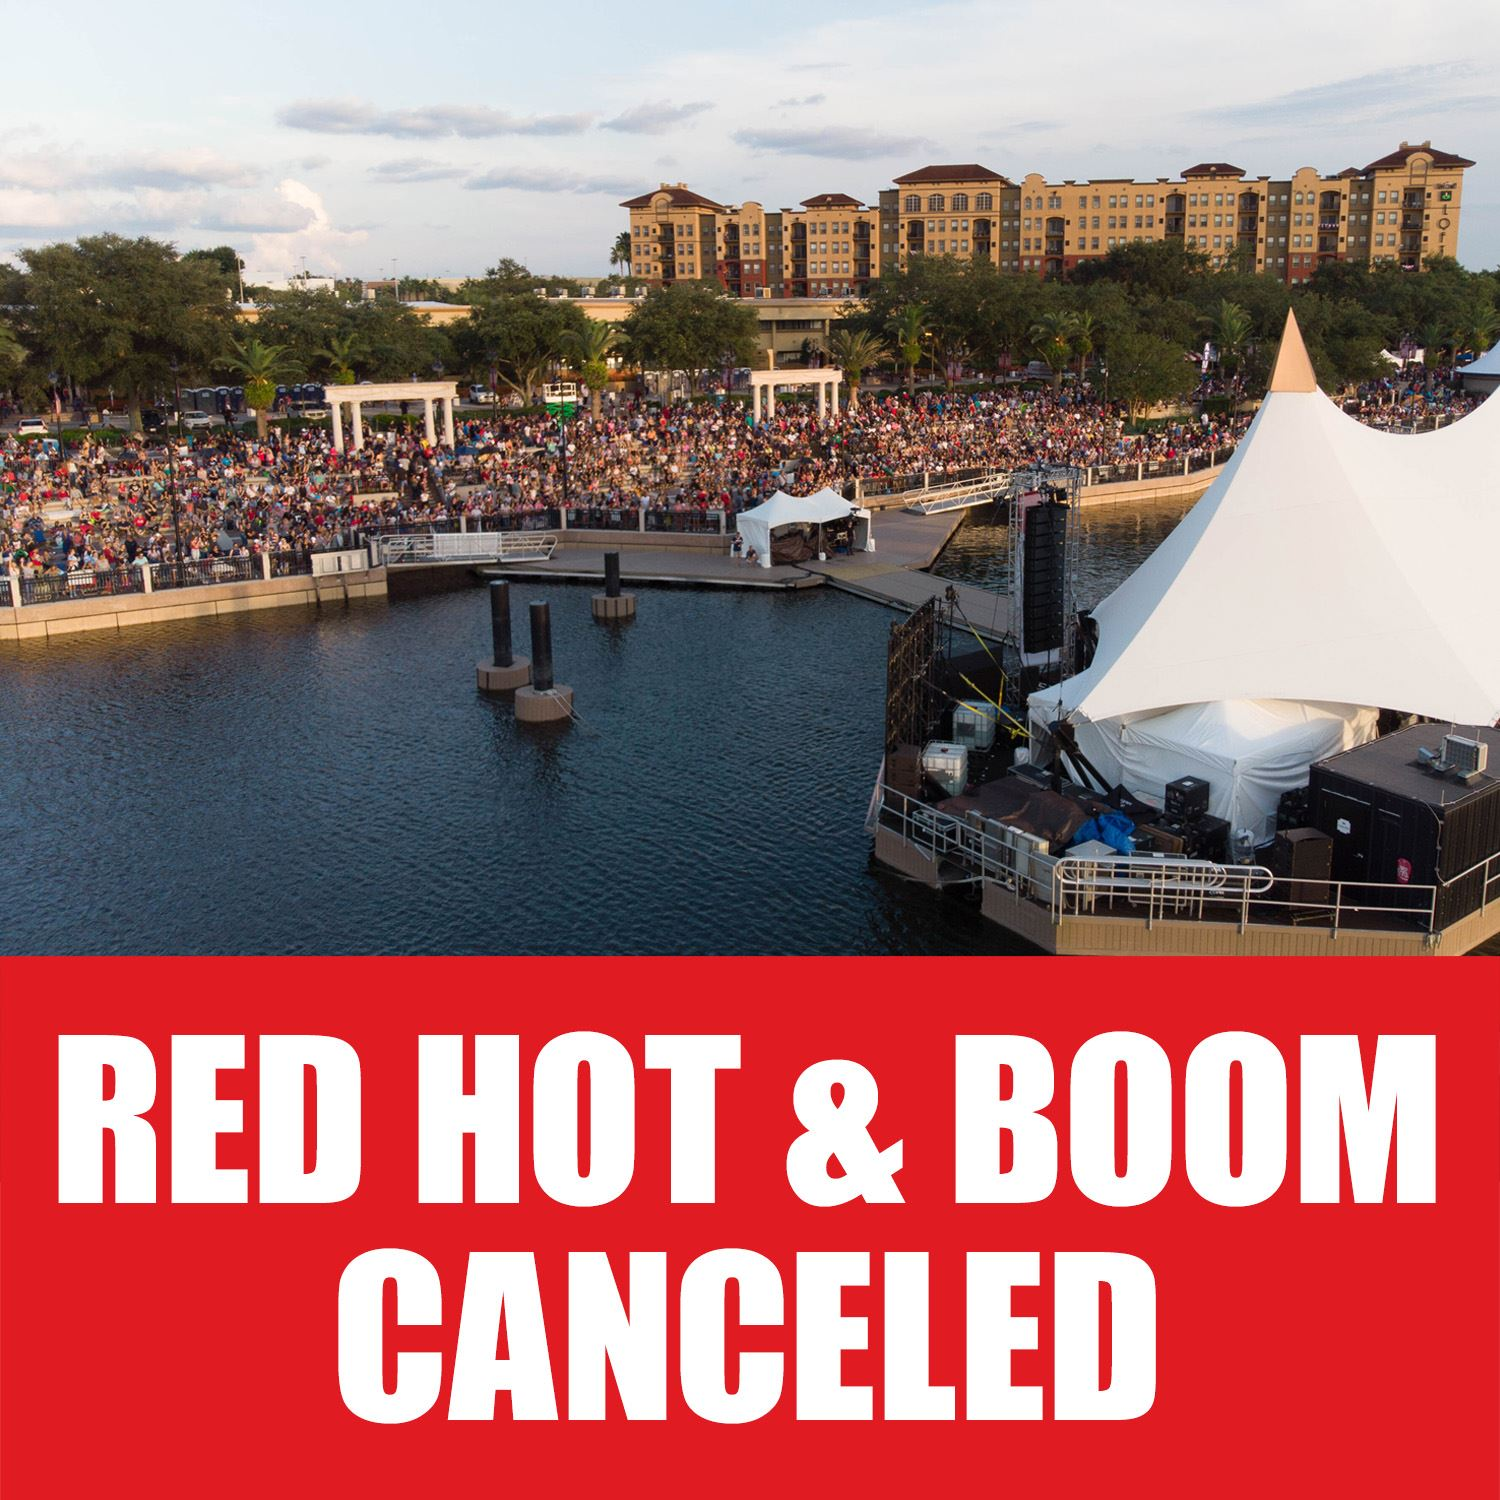 Red Hot & Boom Canceled